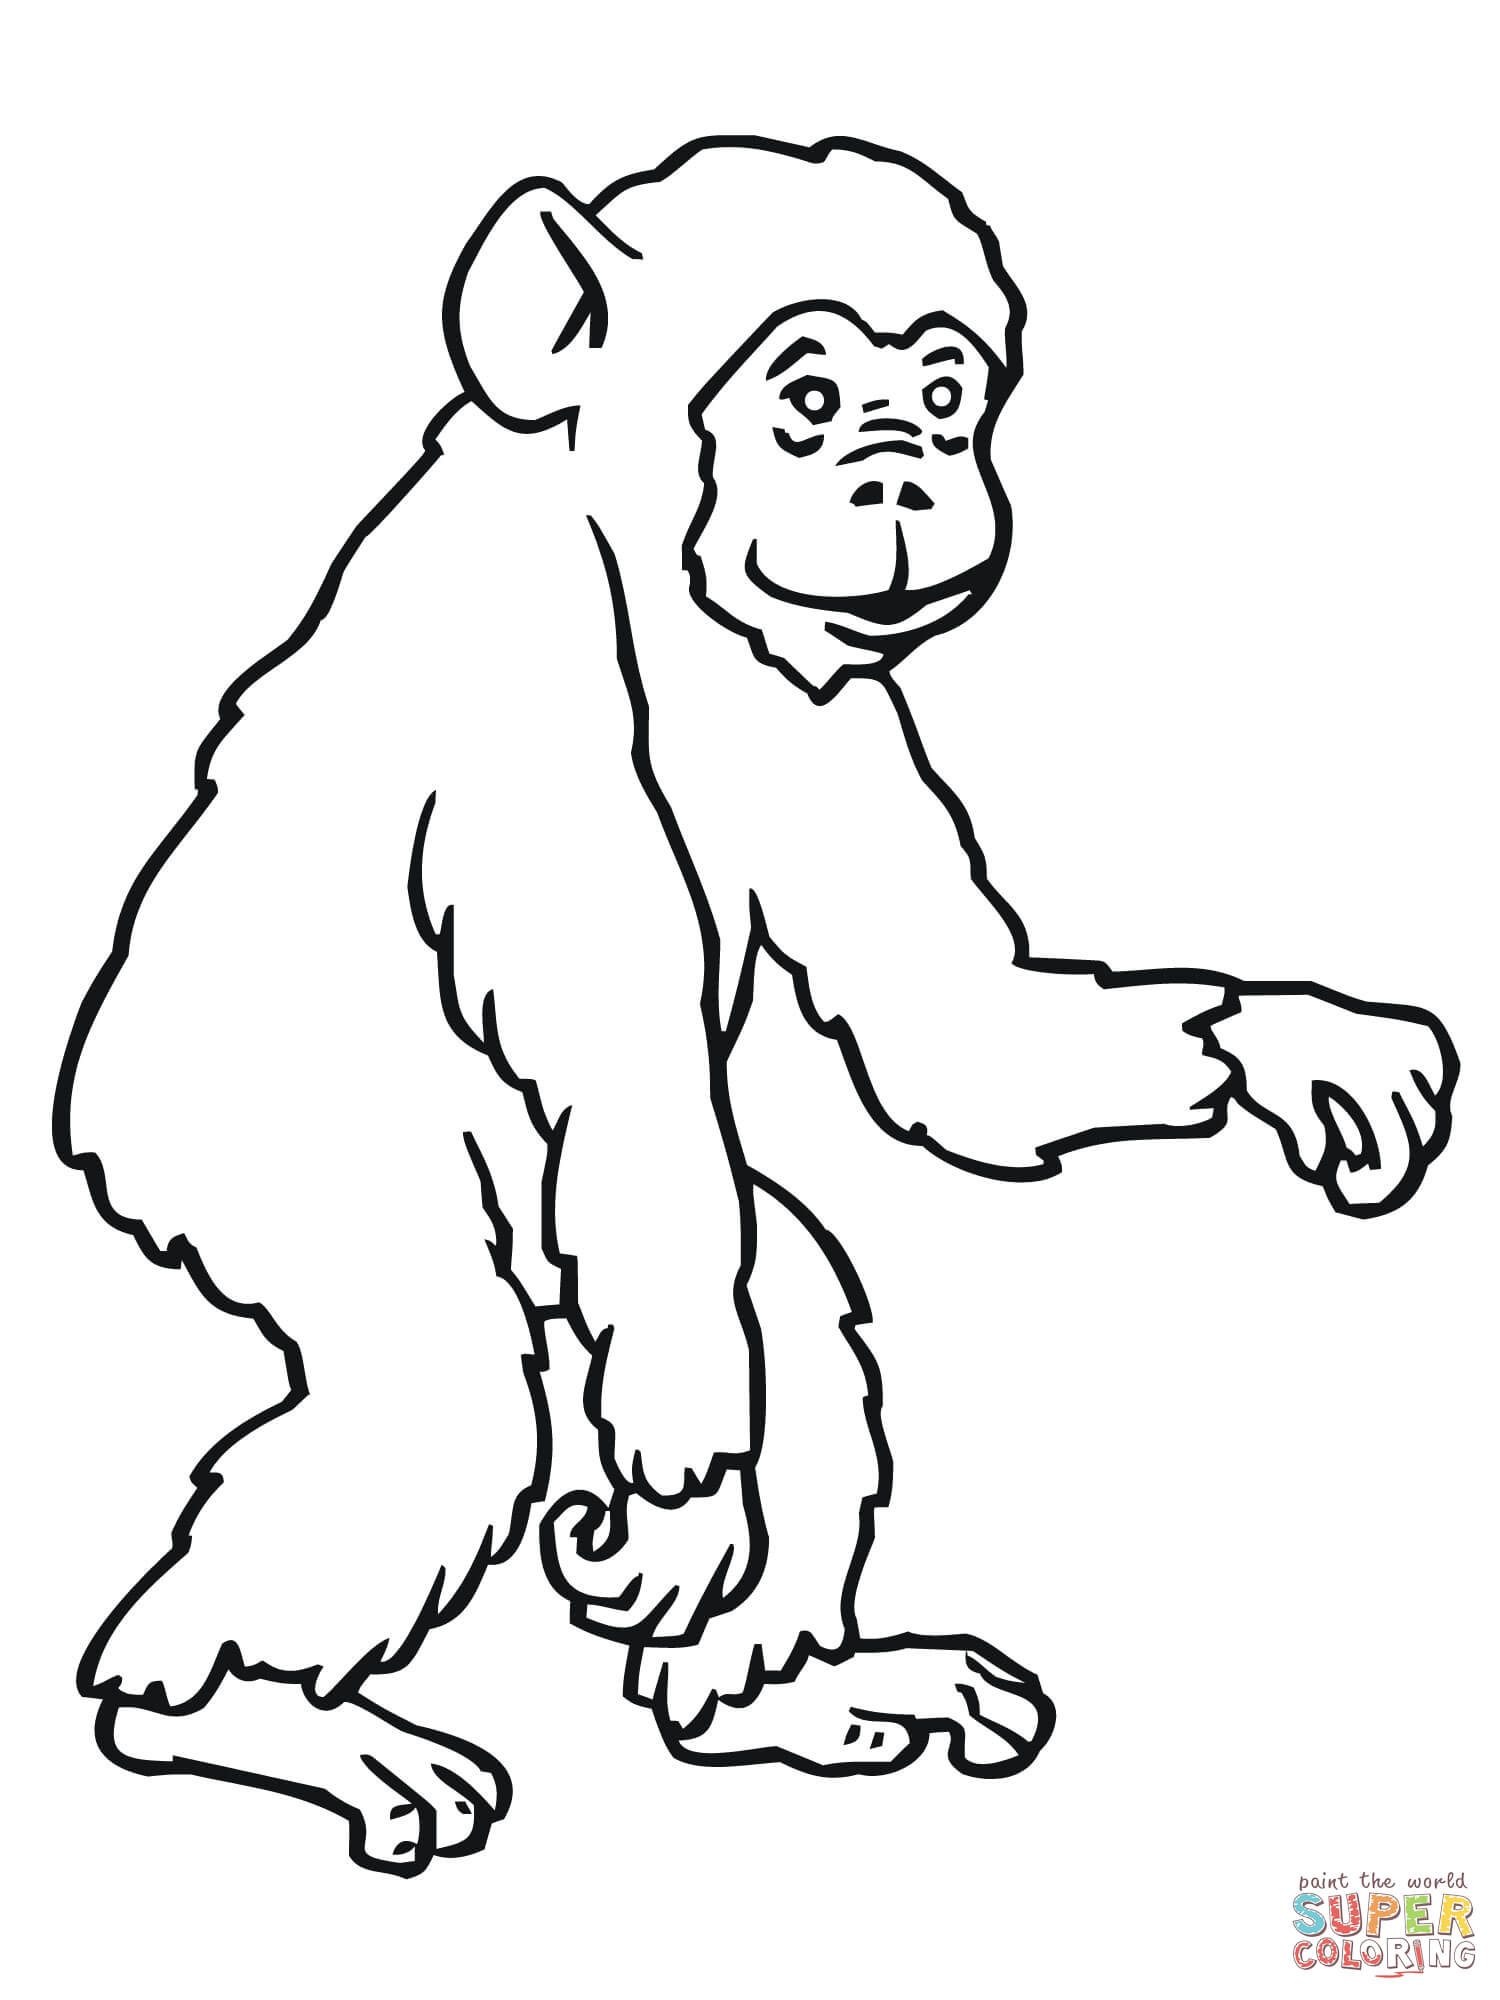 Chimpanzee coloring #16, Download drawings